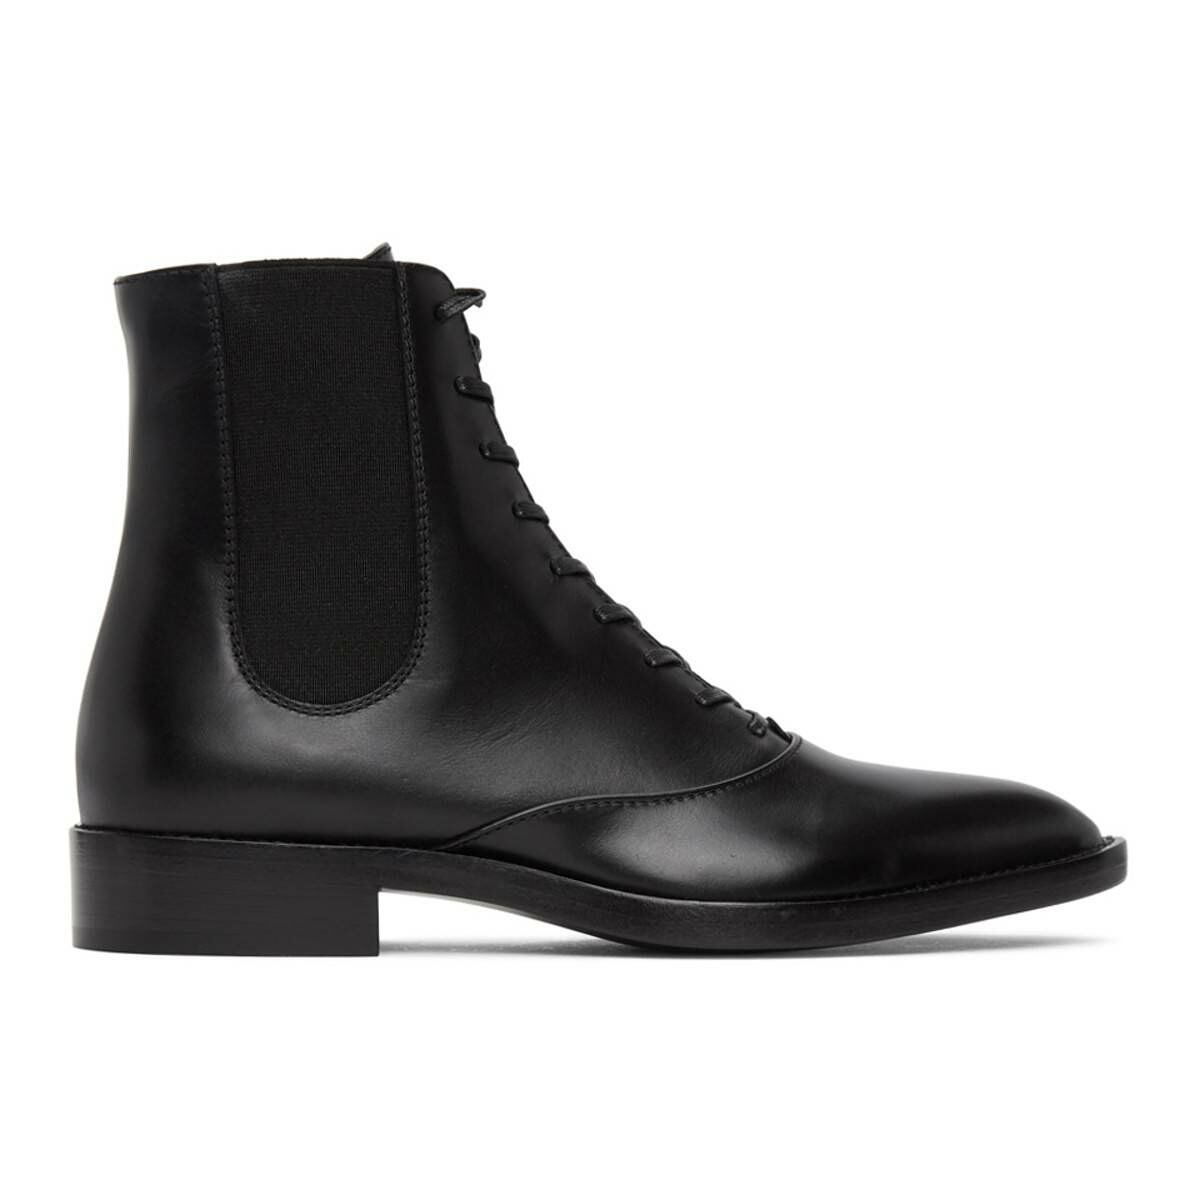 Gianvito Rossi Black Dresda 20 Boots Ssense USA WOMEN Women SHOES Womens ANKLE BOOTS